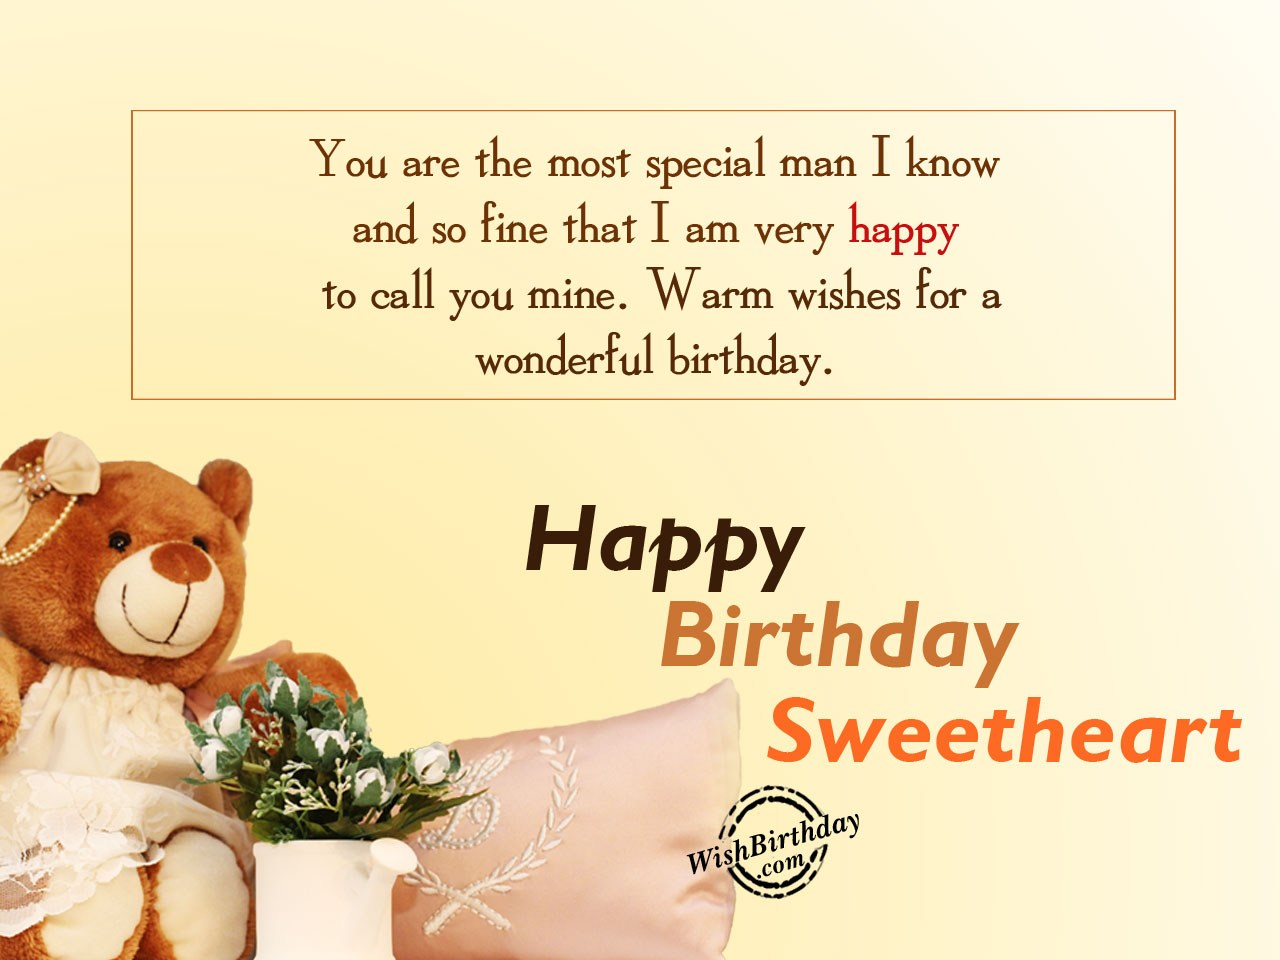 birthday wishes for boyfriend poem in hindi ; You-are-the-most-special-man